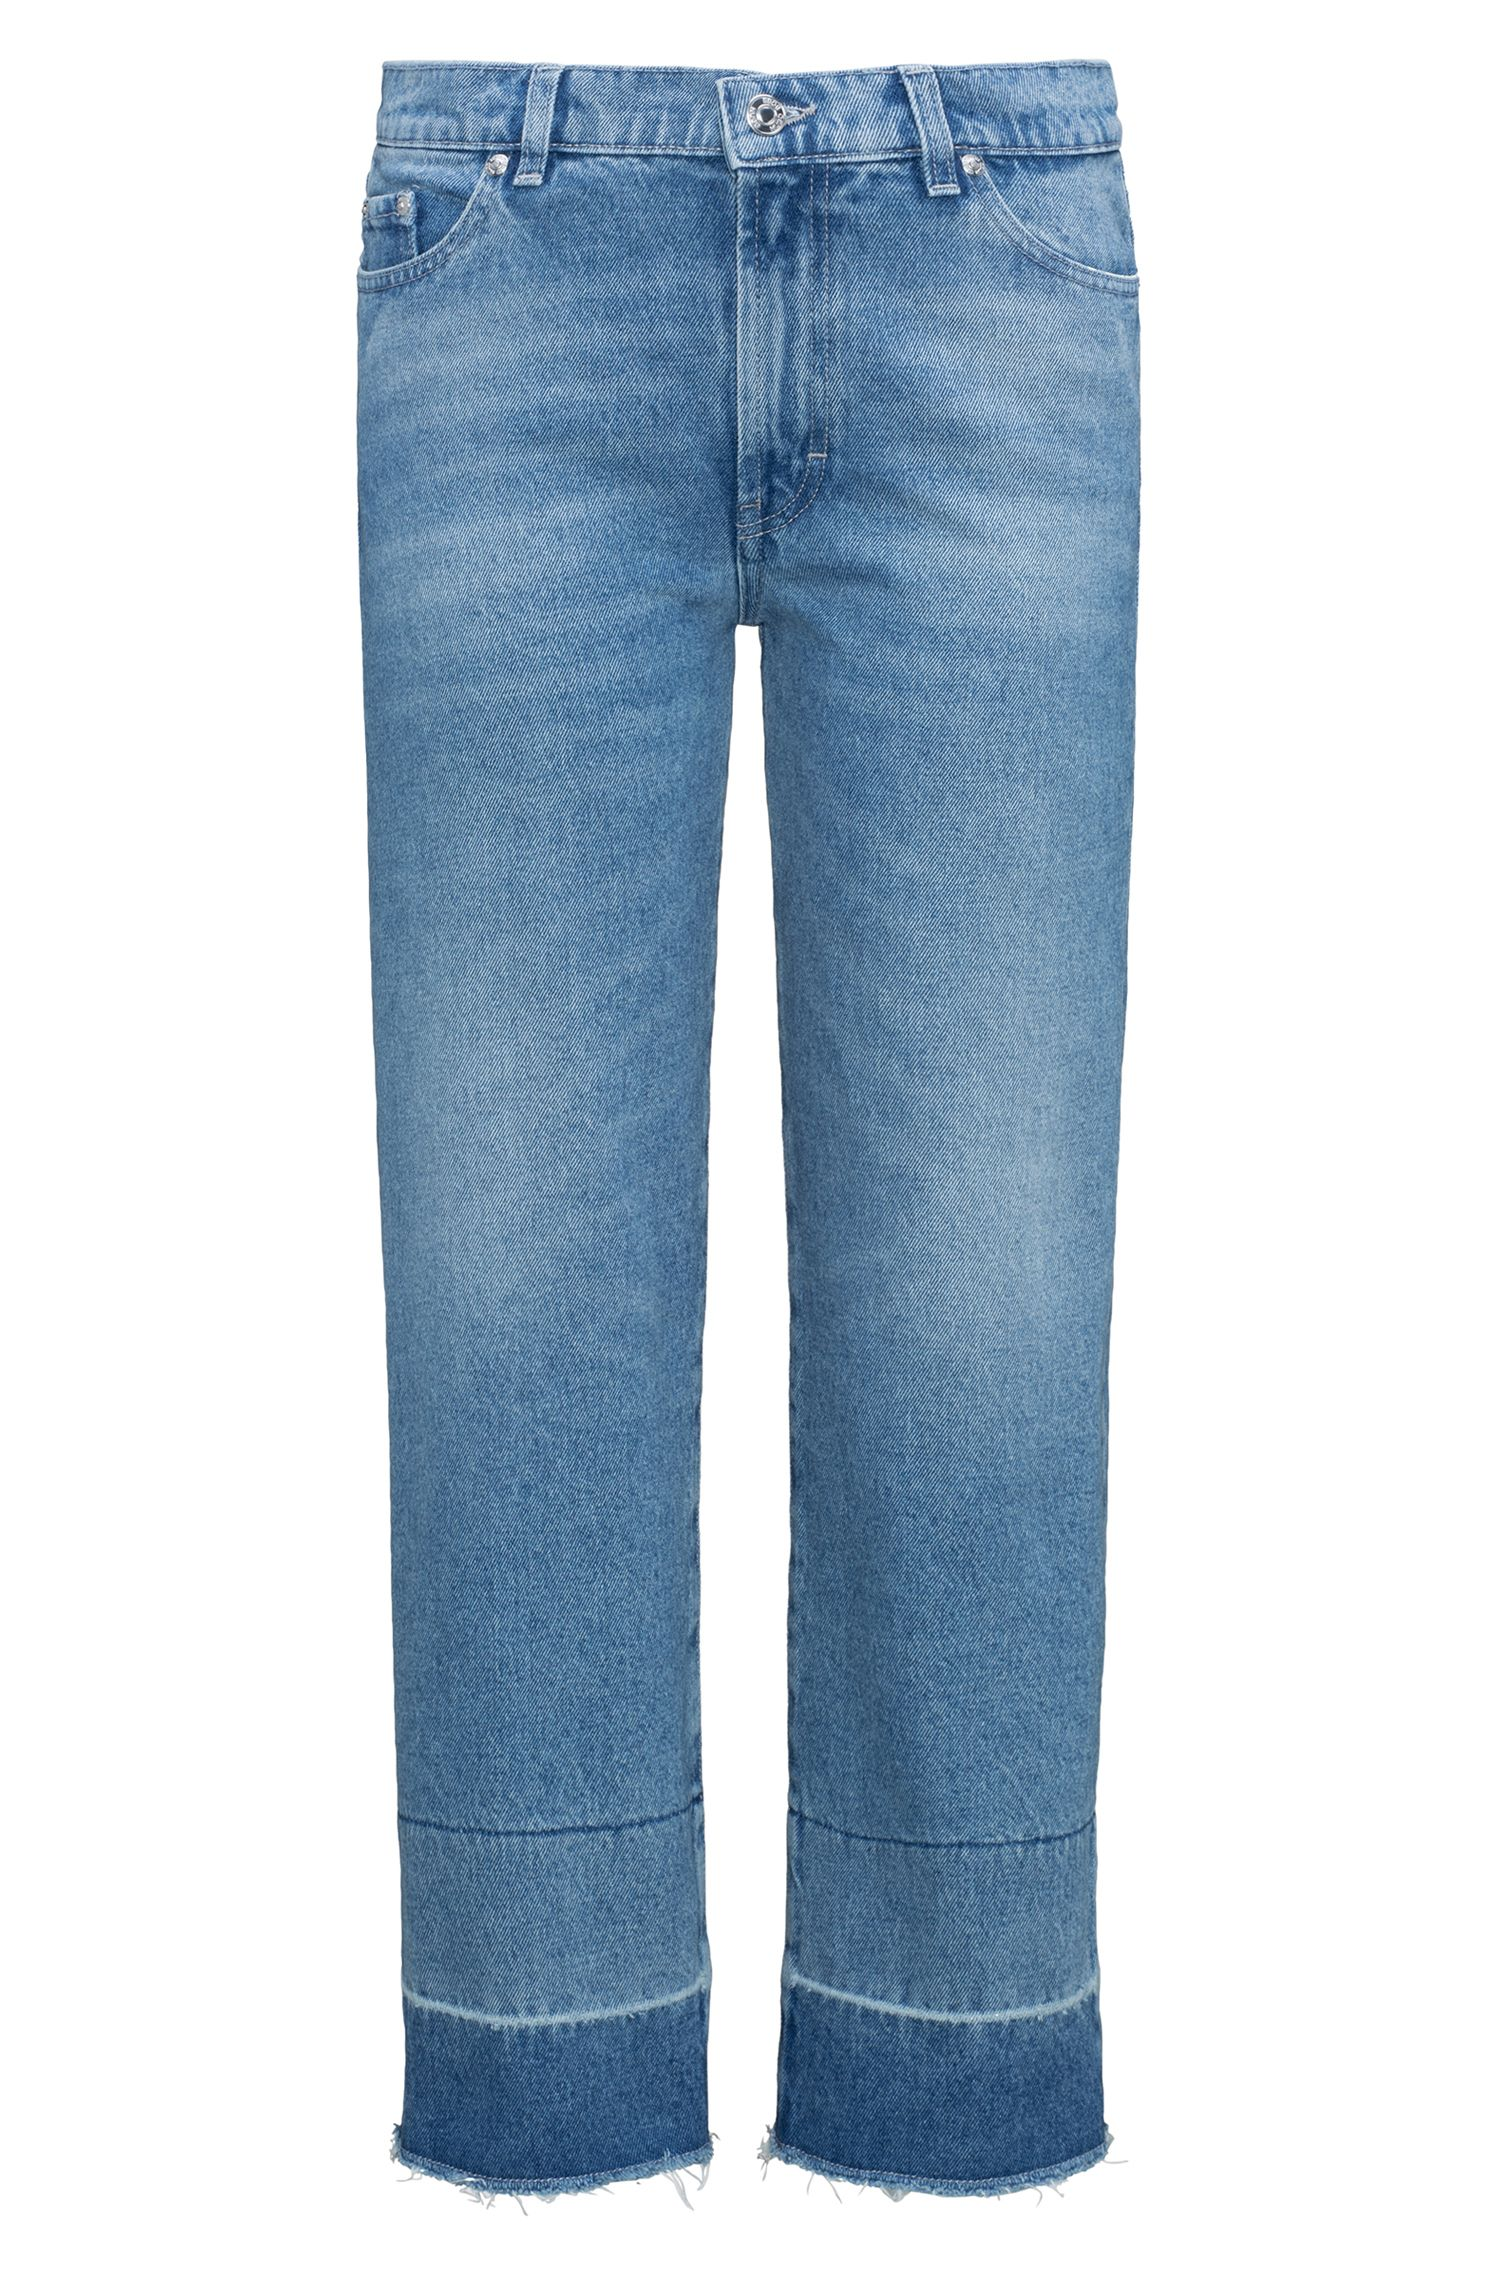 Kortere, slim-fit jeans van stonewashed denim